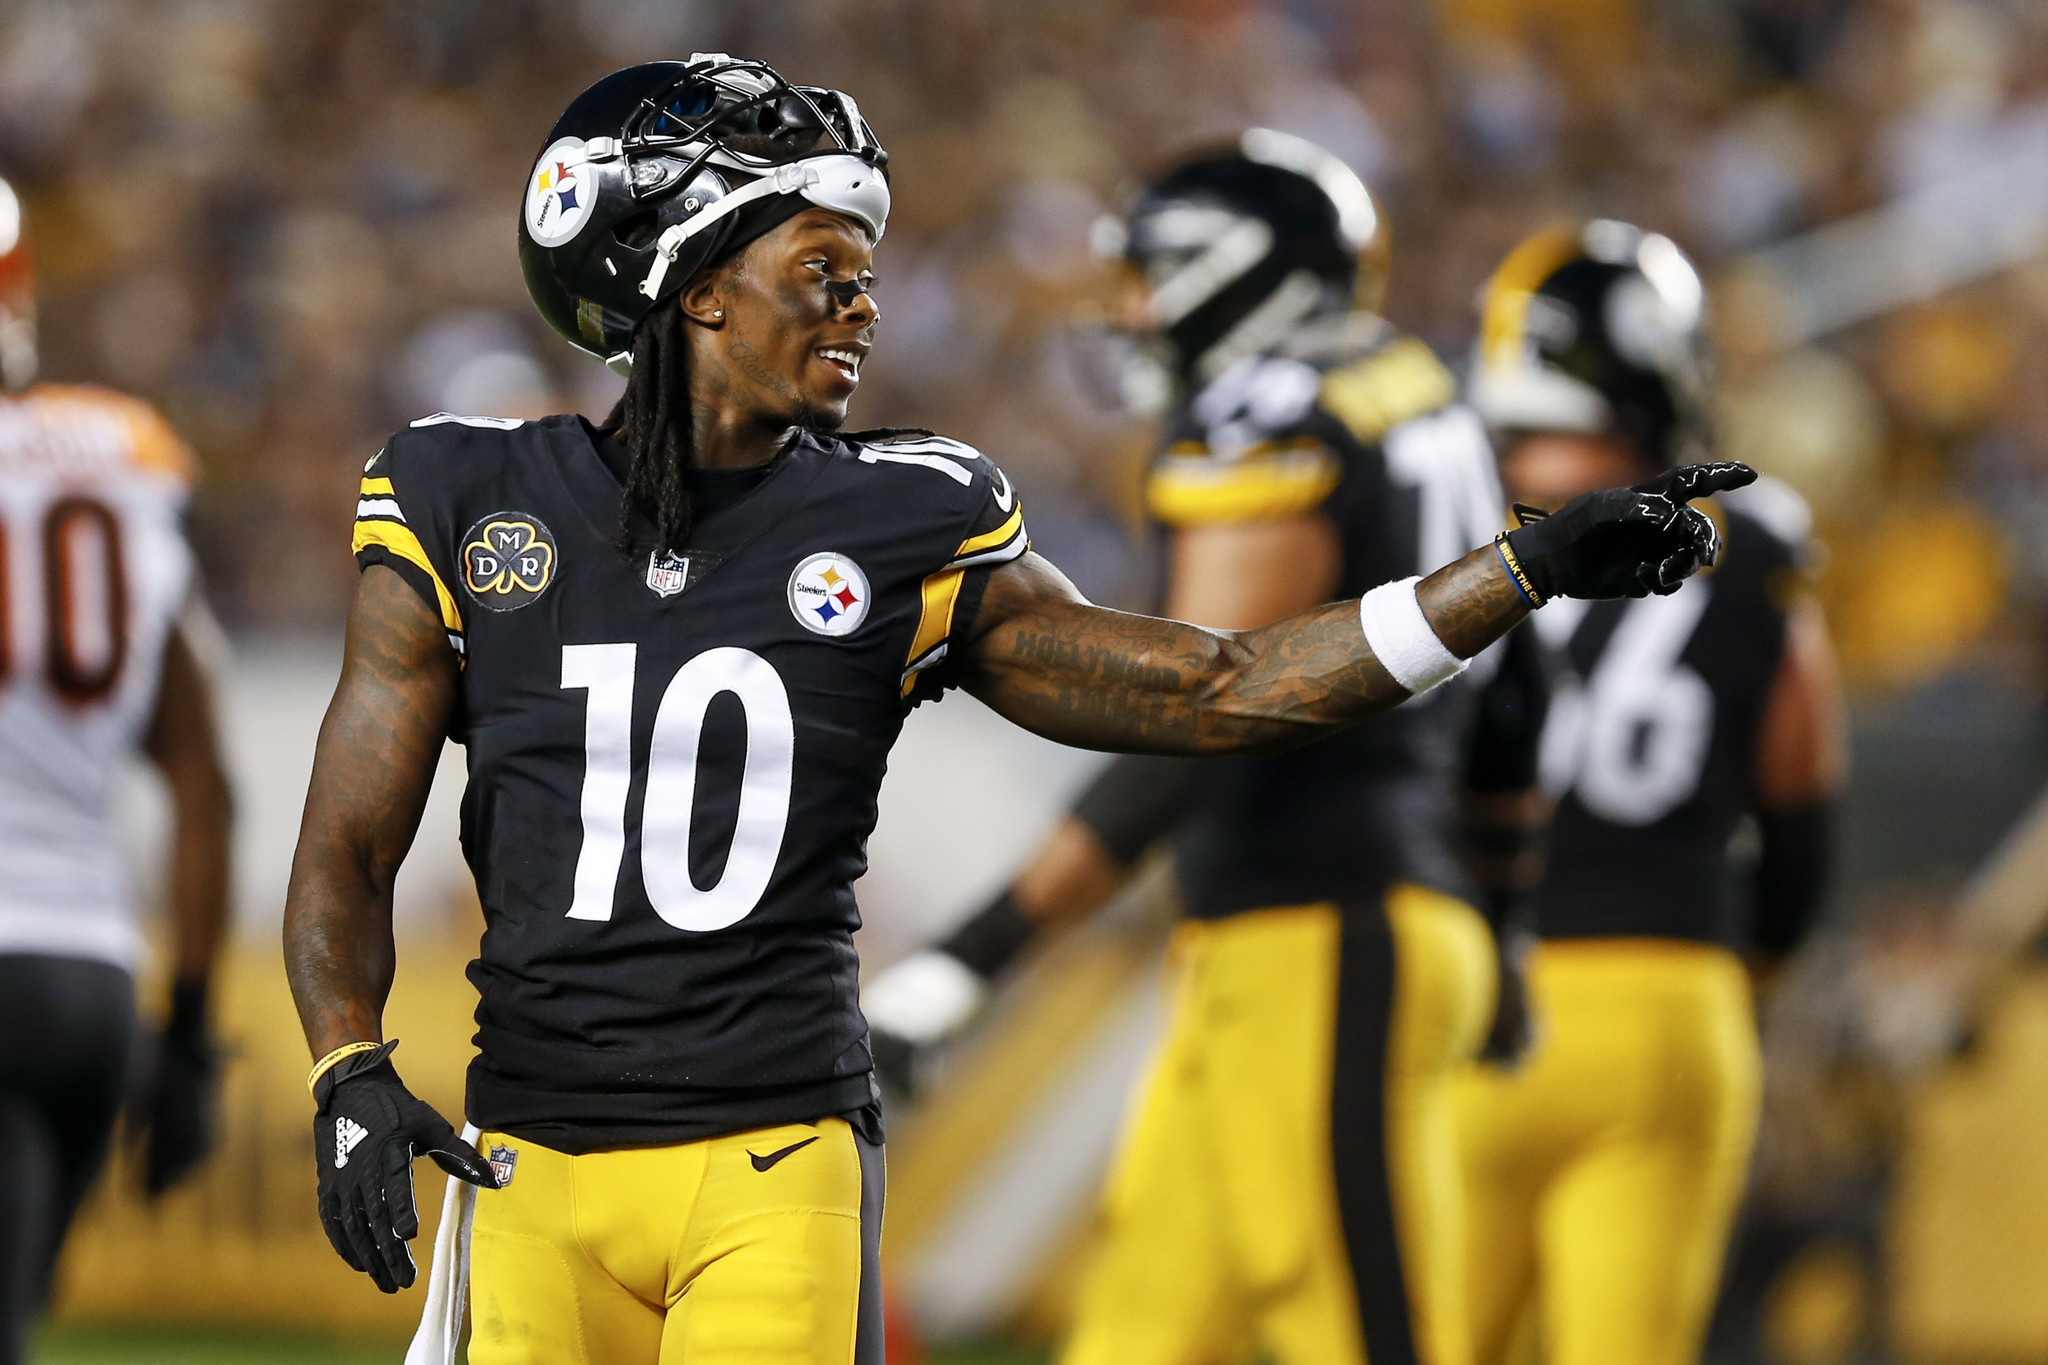 Nfl Wallpaper Hd Steelers Bench Receiver Martavis Bryant After Social Media